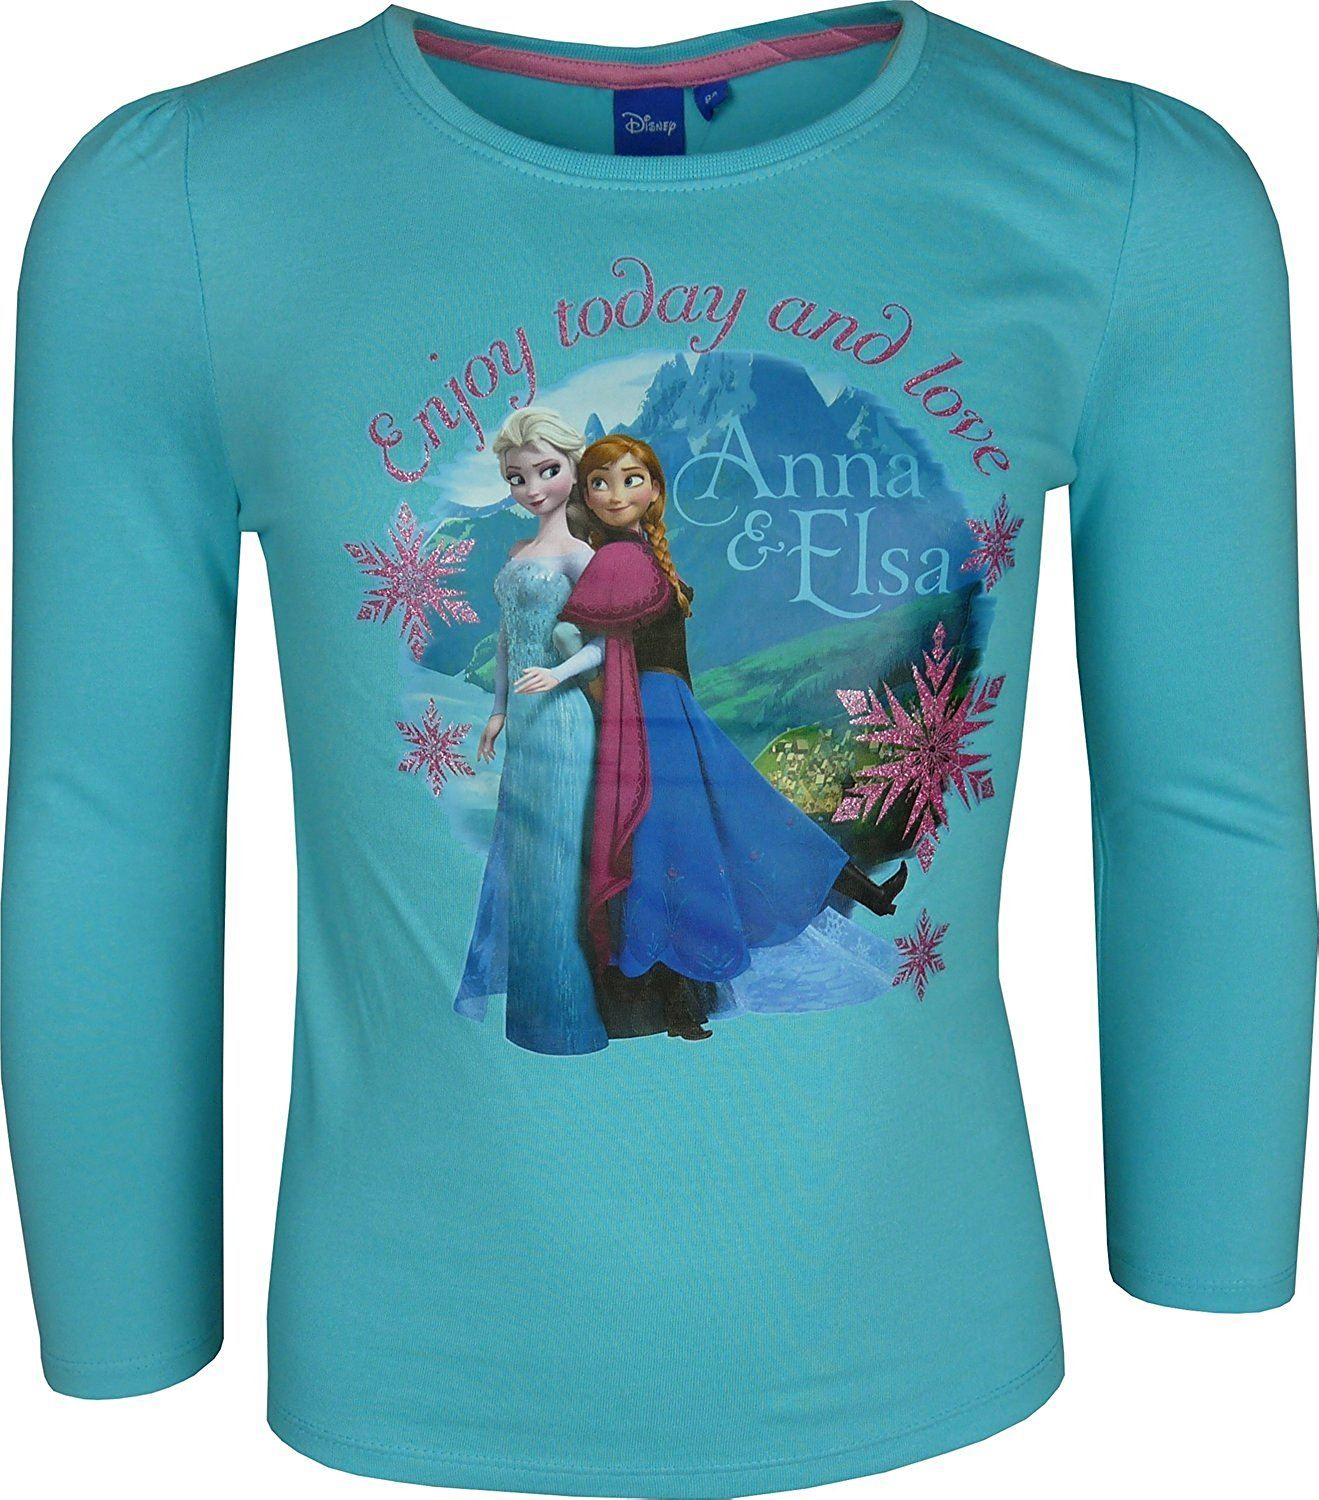 Girls-Disney-Princesses-Sofia-The-First-Frozen-Minnie-Mouse-Long-Sleeve-Top